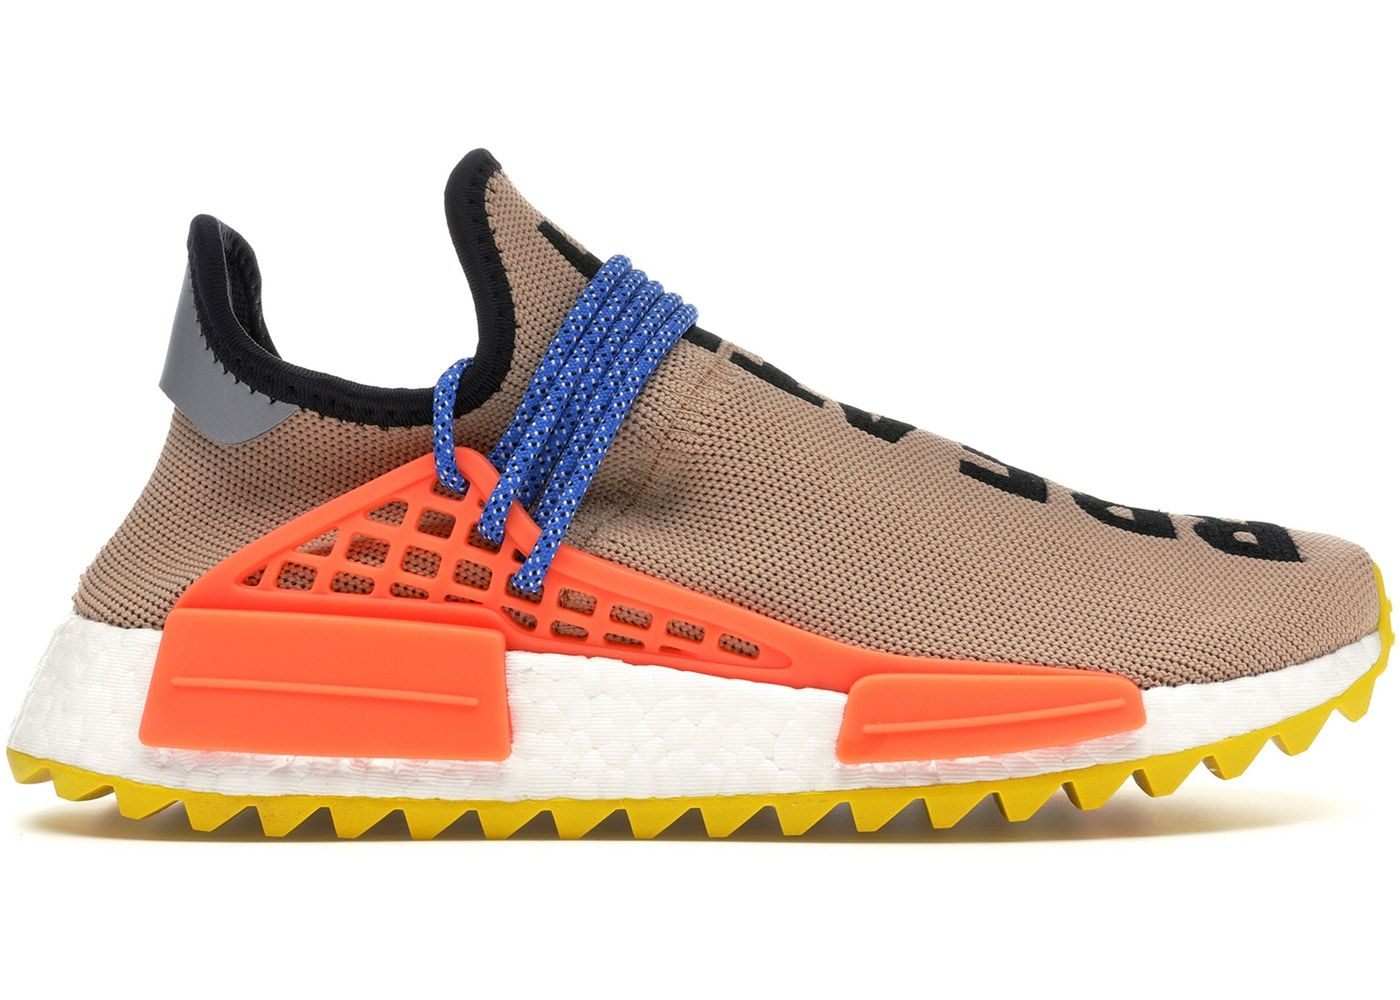 separation shoes 3e511 e9d52 adidas Human Race NMD Pharrell Pale Nude in 2019 | Shoes ...